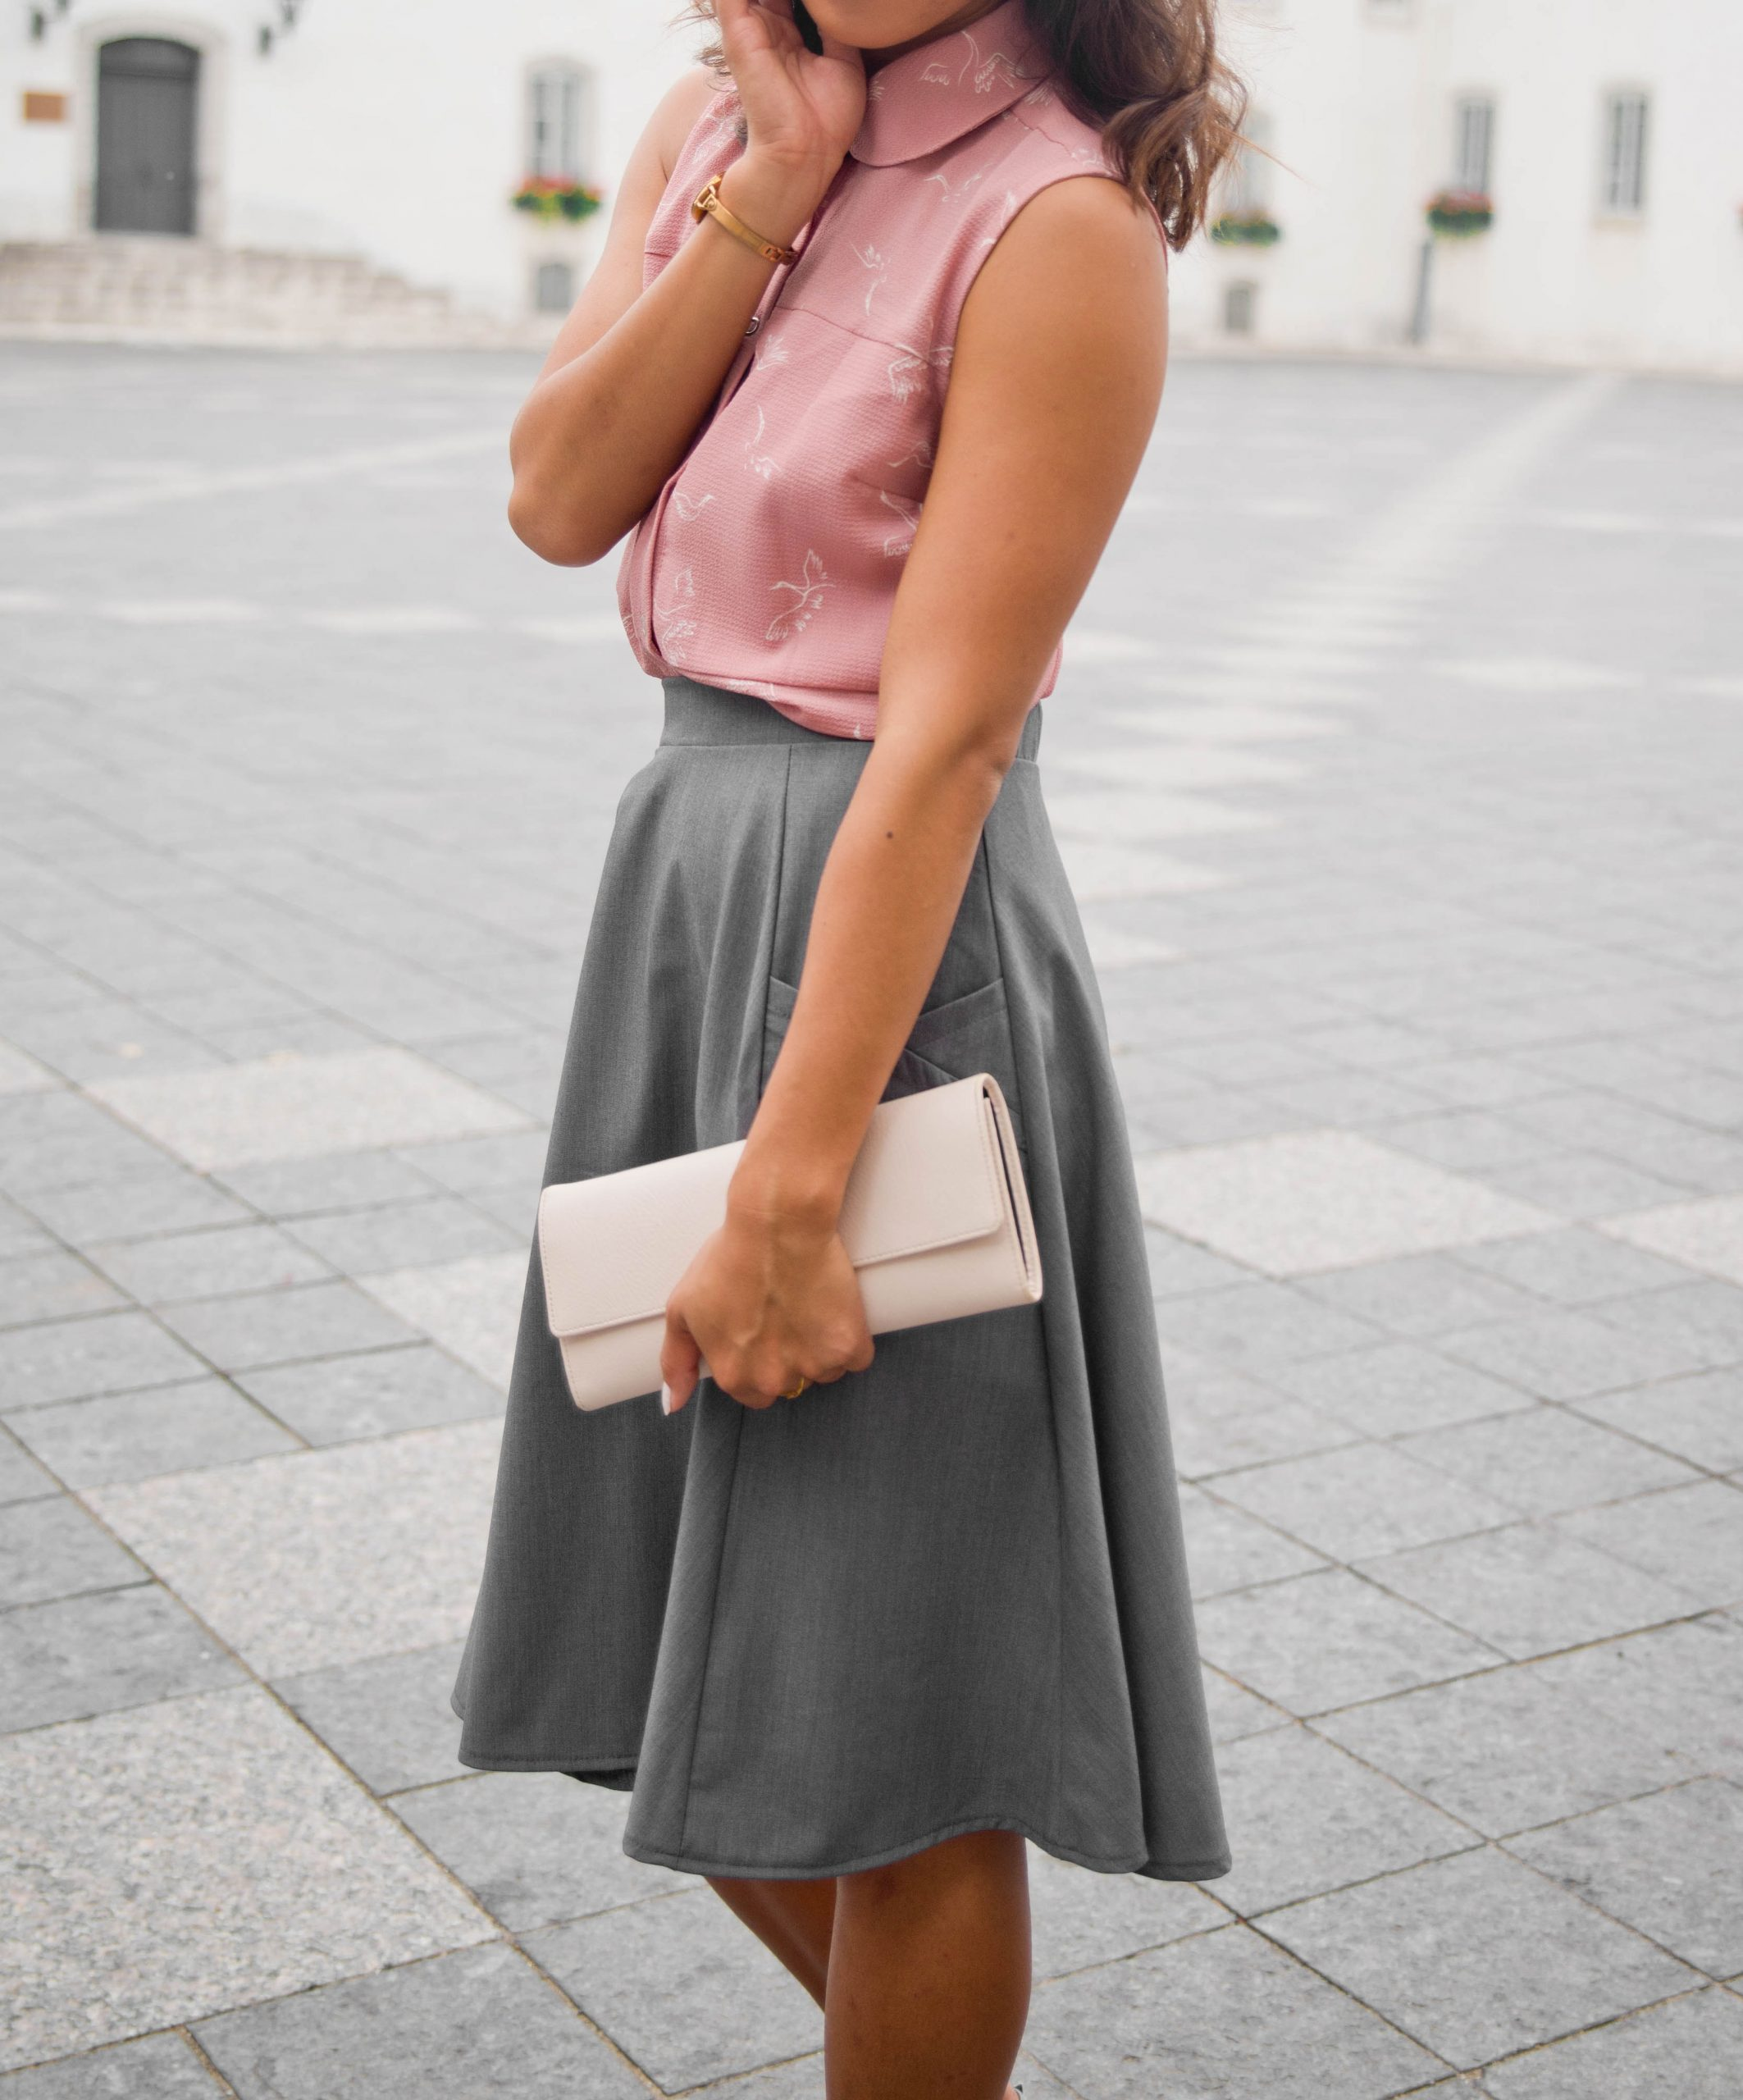 shirt-for-woman-chemise-pour-femme-clothes-made-in-quebec-look-with-skirt-chic-corpo-confortable-marilou-design-Look féminin, chemise agencé à une jupe grise, marilou design